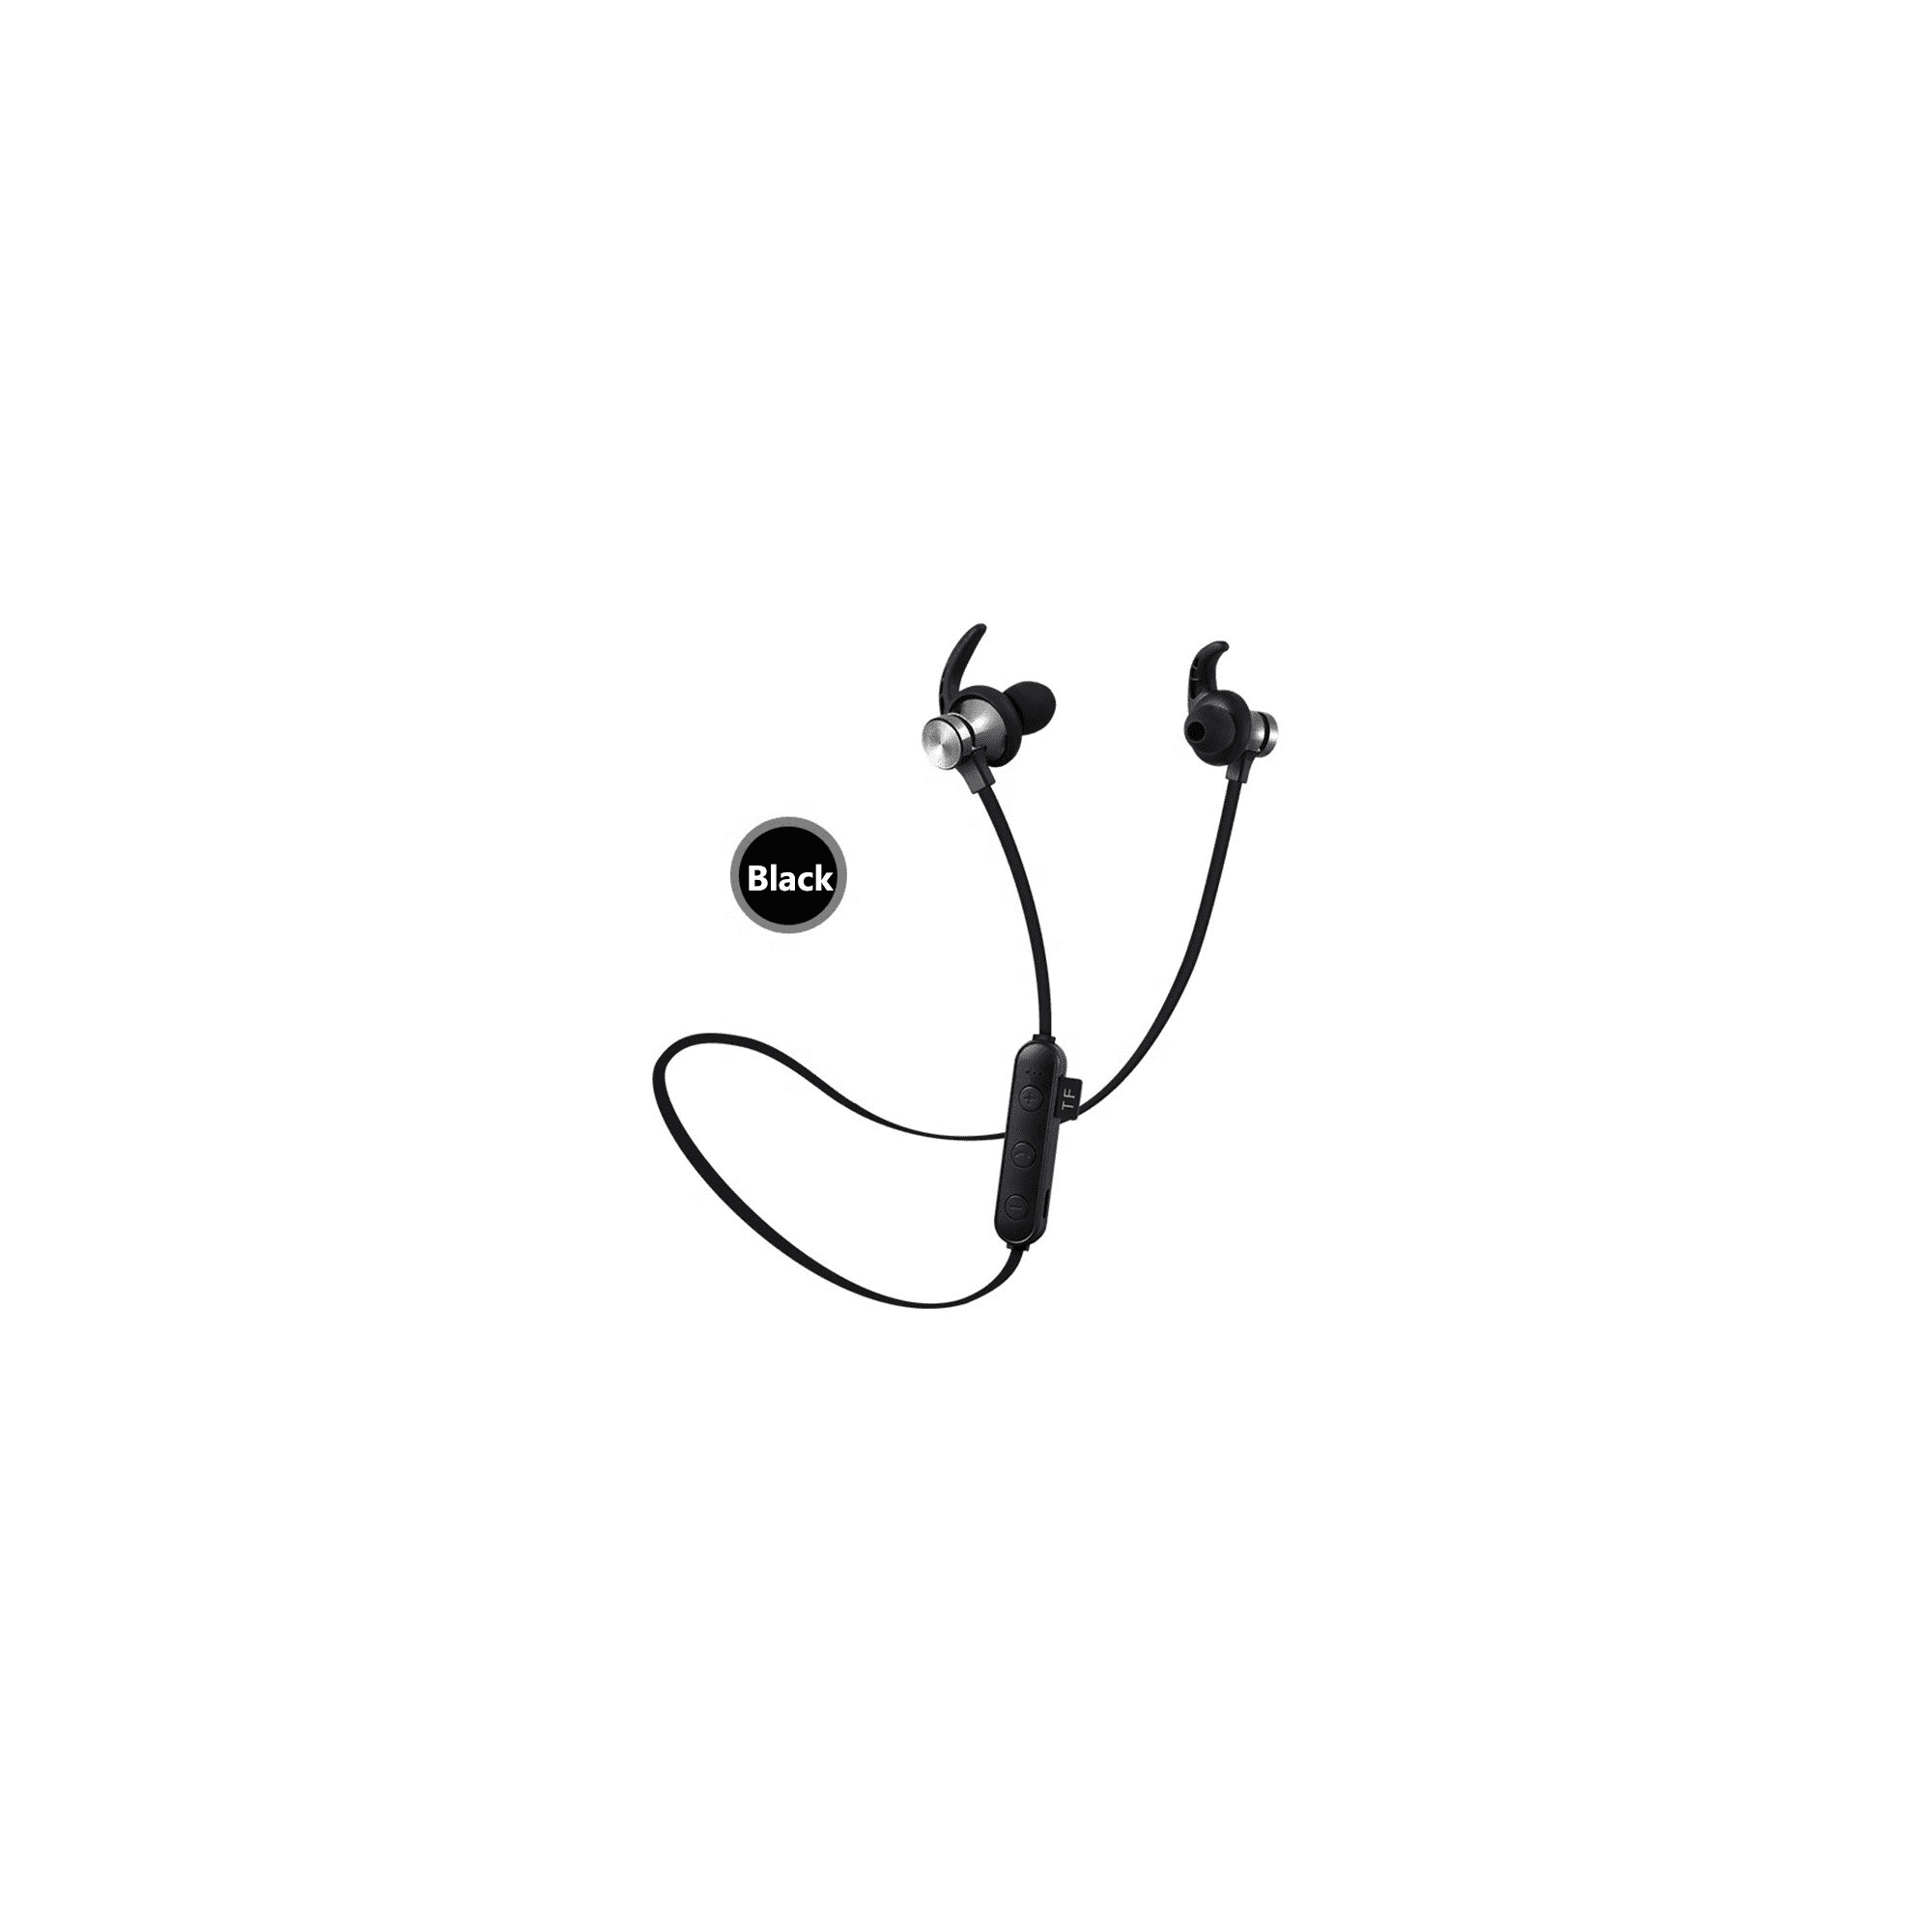 Black Wireless Sports Earbuds Xt22 Bluetooth Headphones Magnetic Attraction Wireless Bluetooth Headset Build In Mic Pluggable Tf Card Walmart Canada